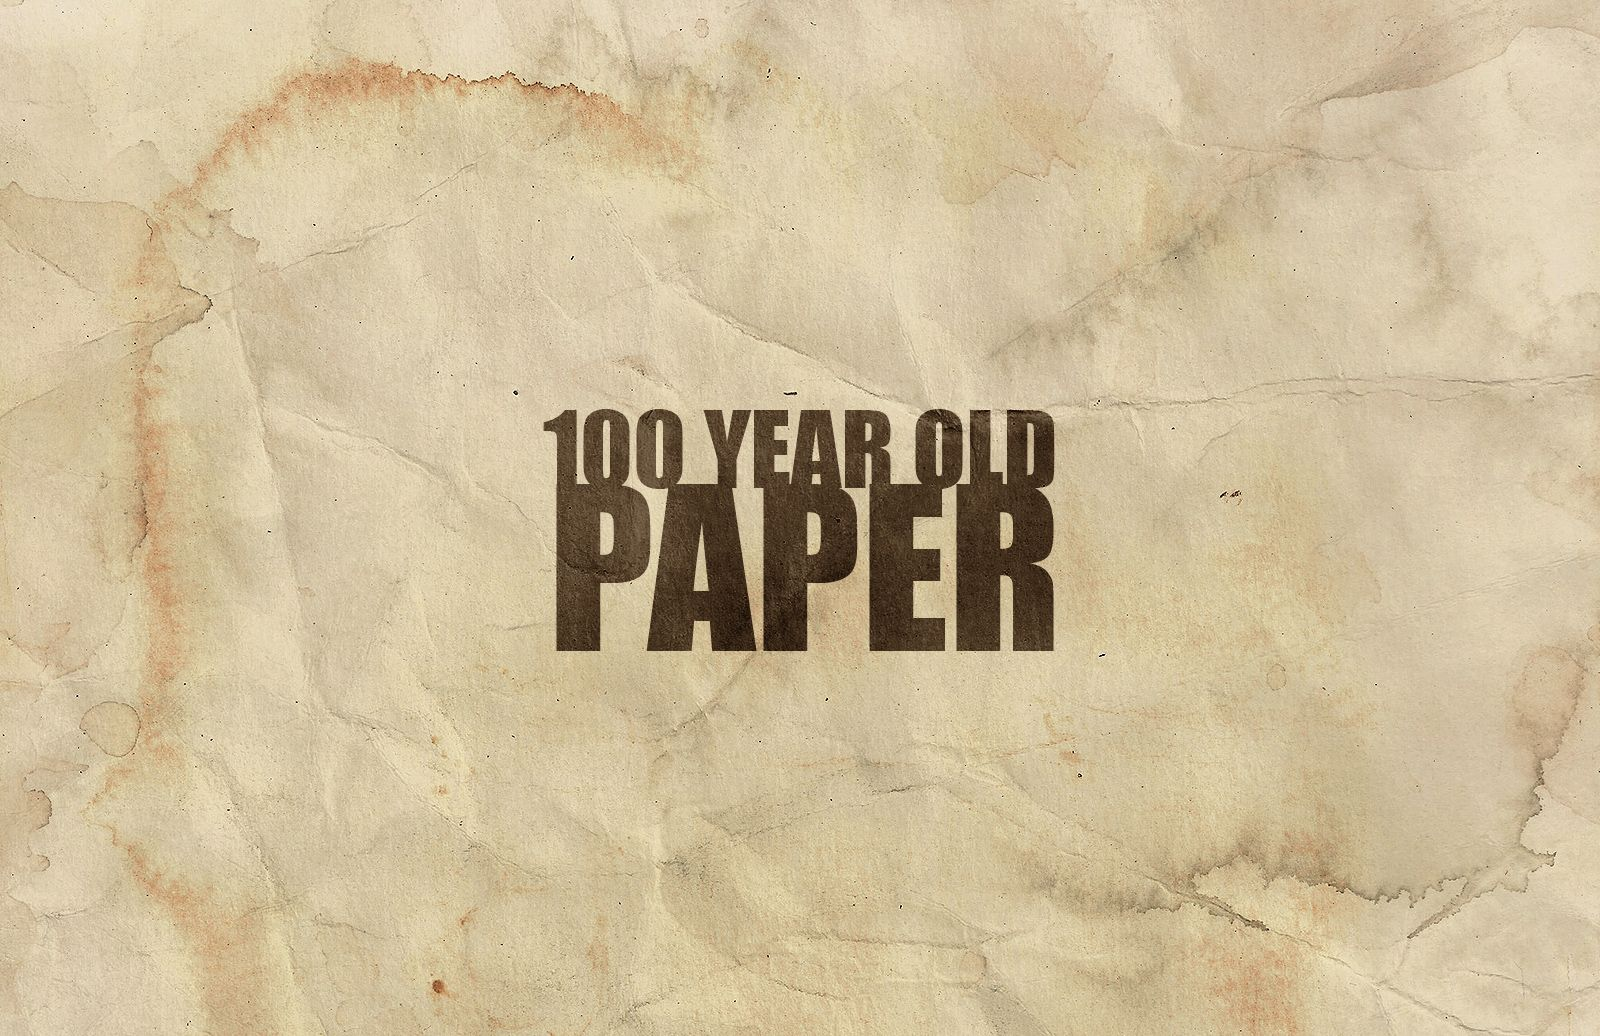 100 Year Old Paper Textures | old paper | Paper texture, Old paper